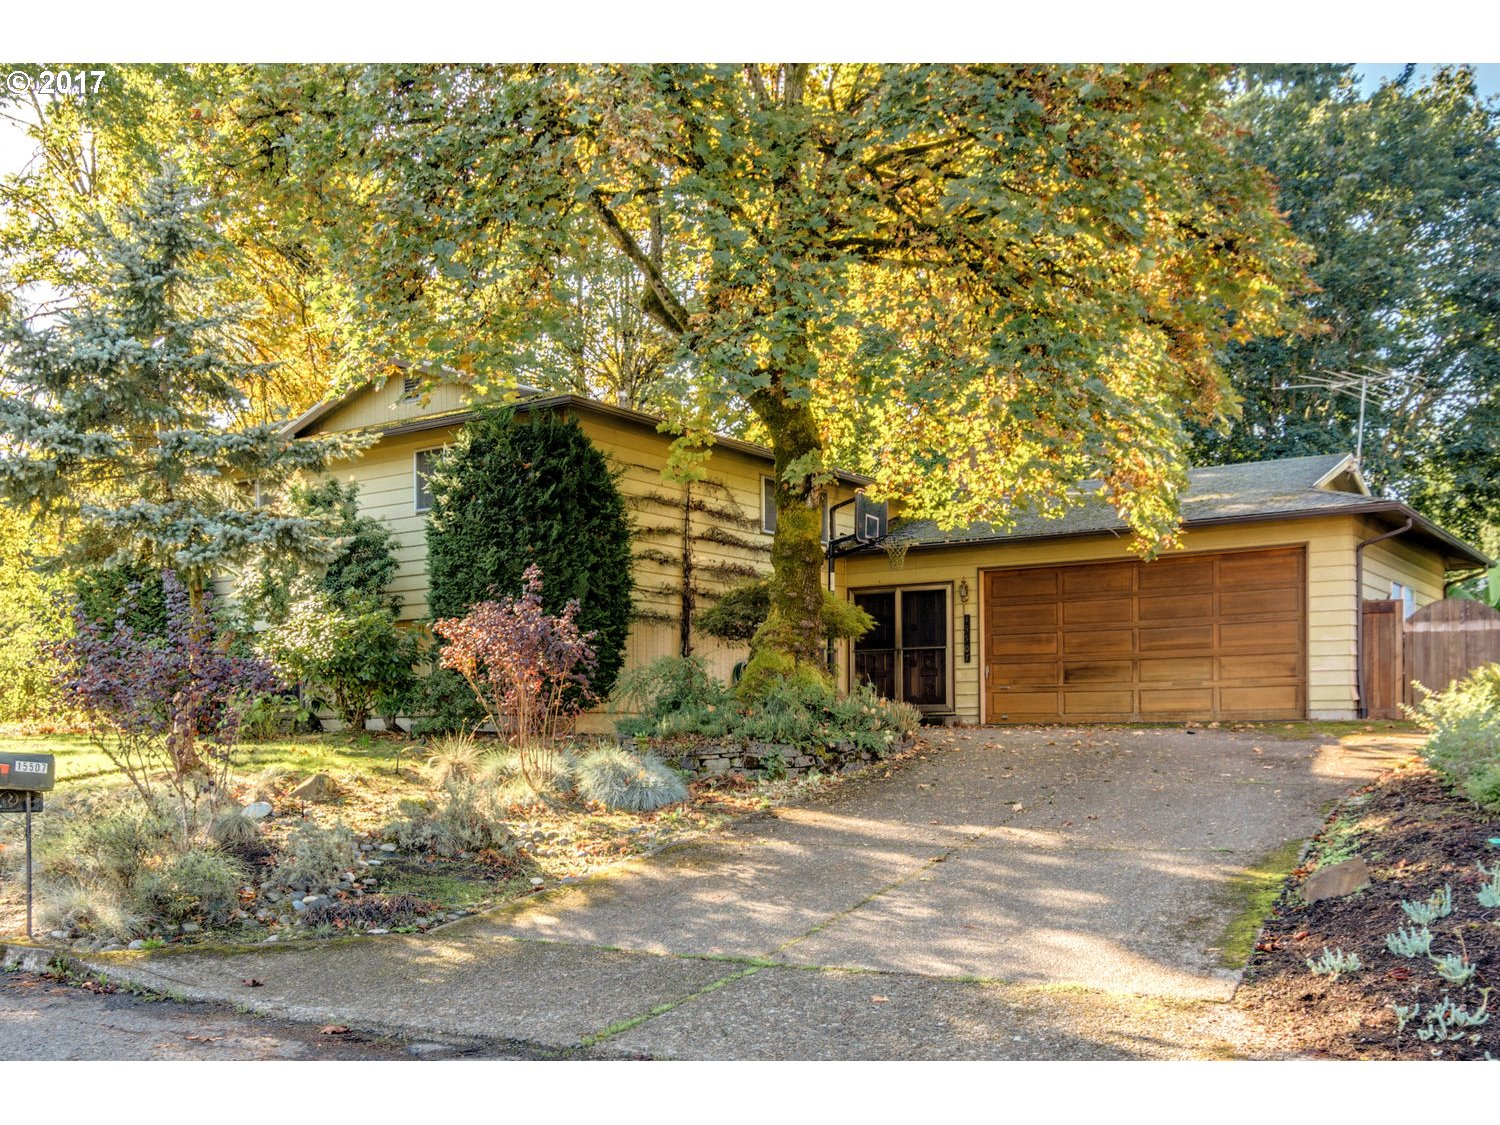 Wonderful location just a few blocks from the Willamette River in the Robinwood Neighborhood.  This roomy Daylight Ranch has two master suites, large rooms, two fireplaces, and a spacious lower level with wet bar that's perfect for entertaining.  Hardwoods on the main floor. Needs some updating, but perfect for the buyer who wants to have some fun making it their own!